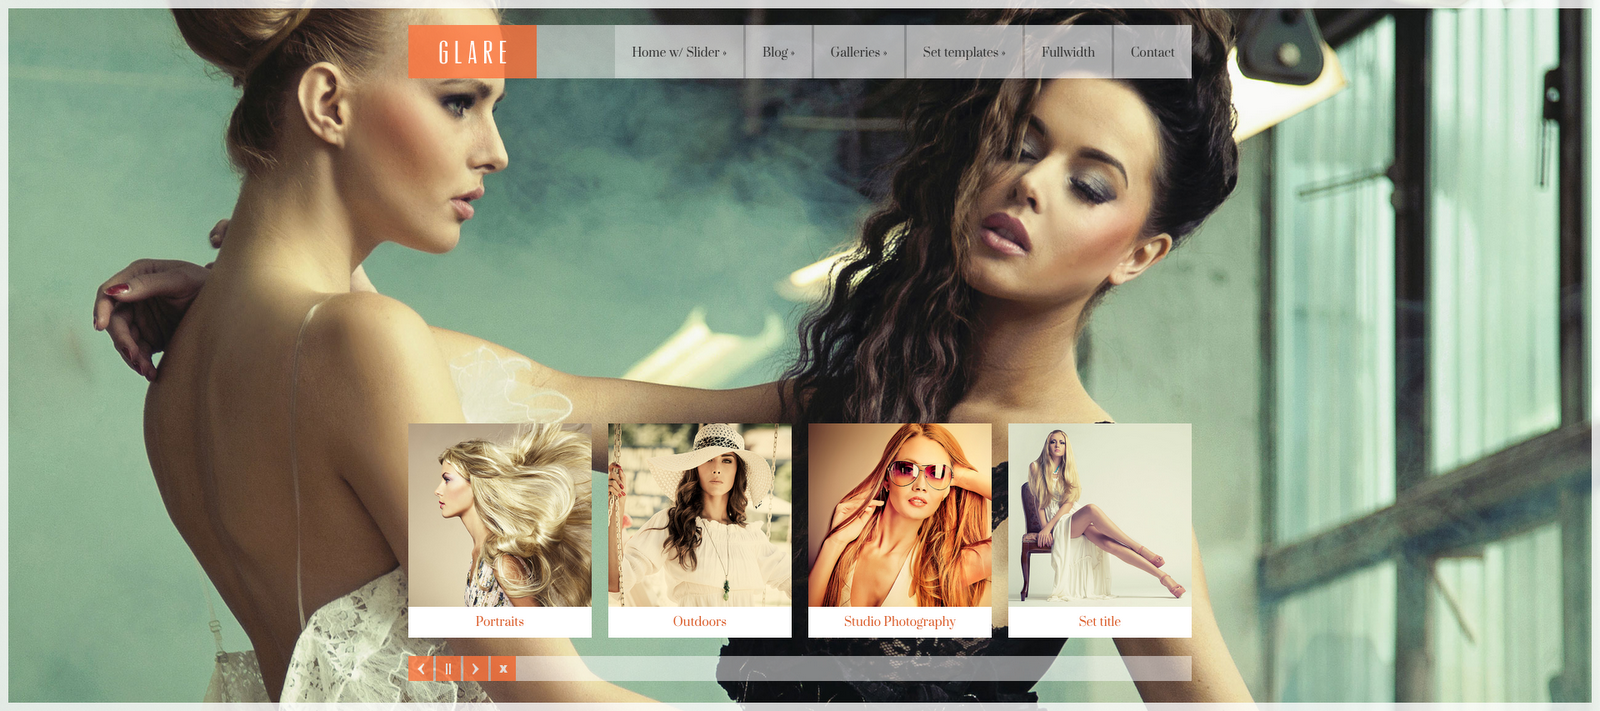 Glare-Photography-Portfolio-HTML5-and-CSS3-Template